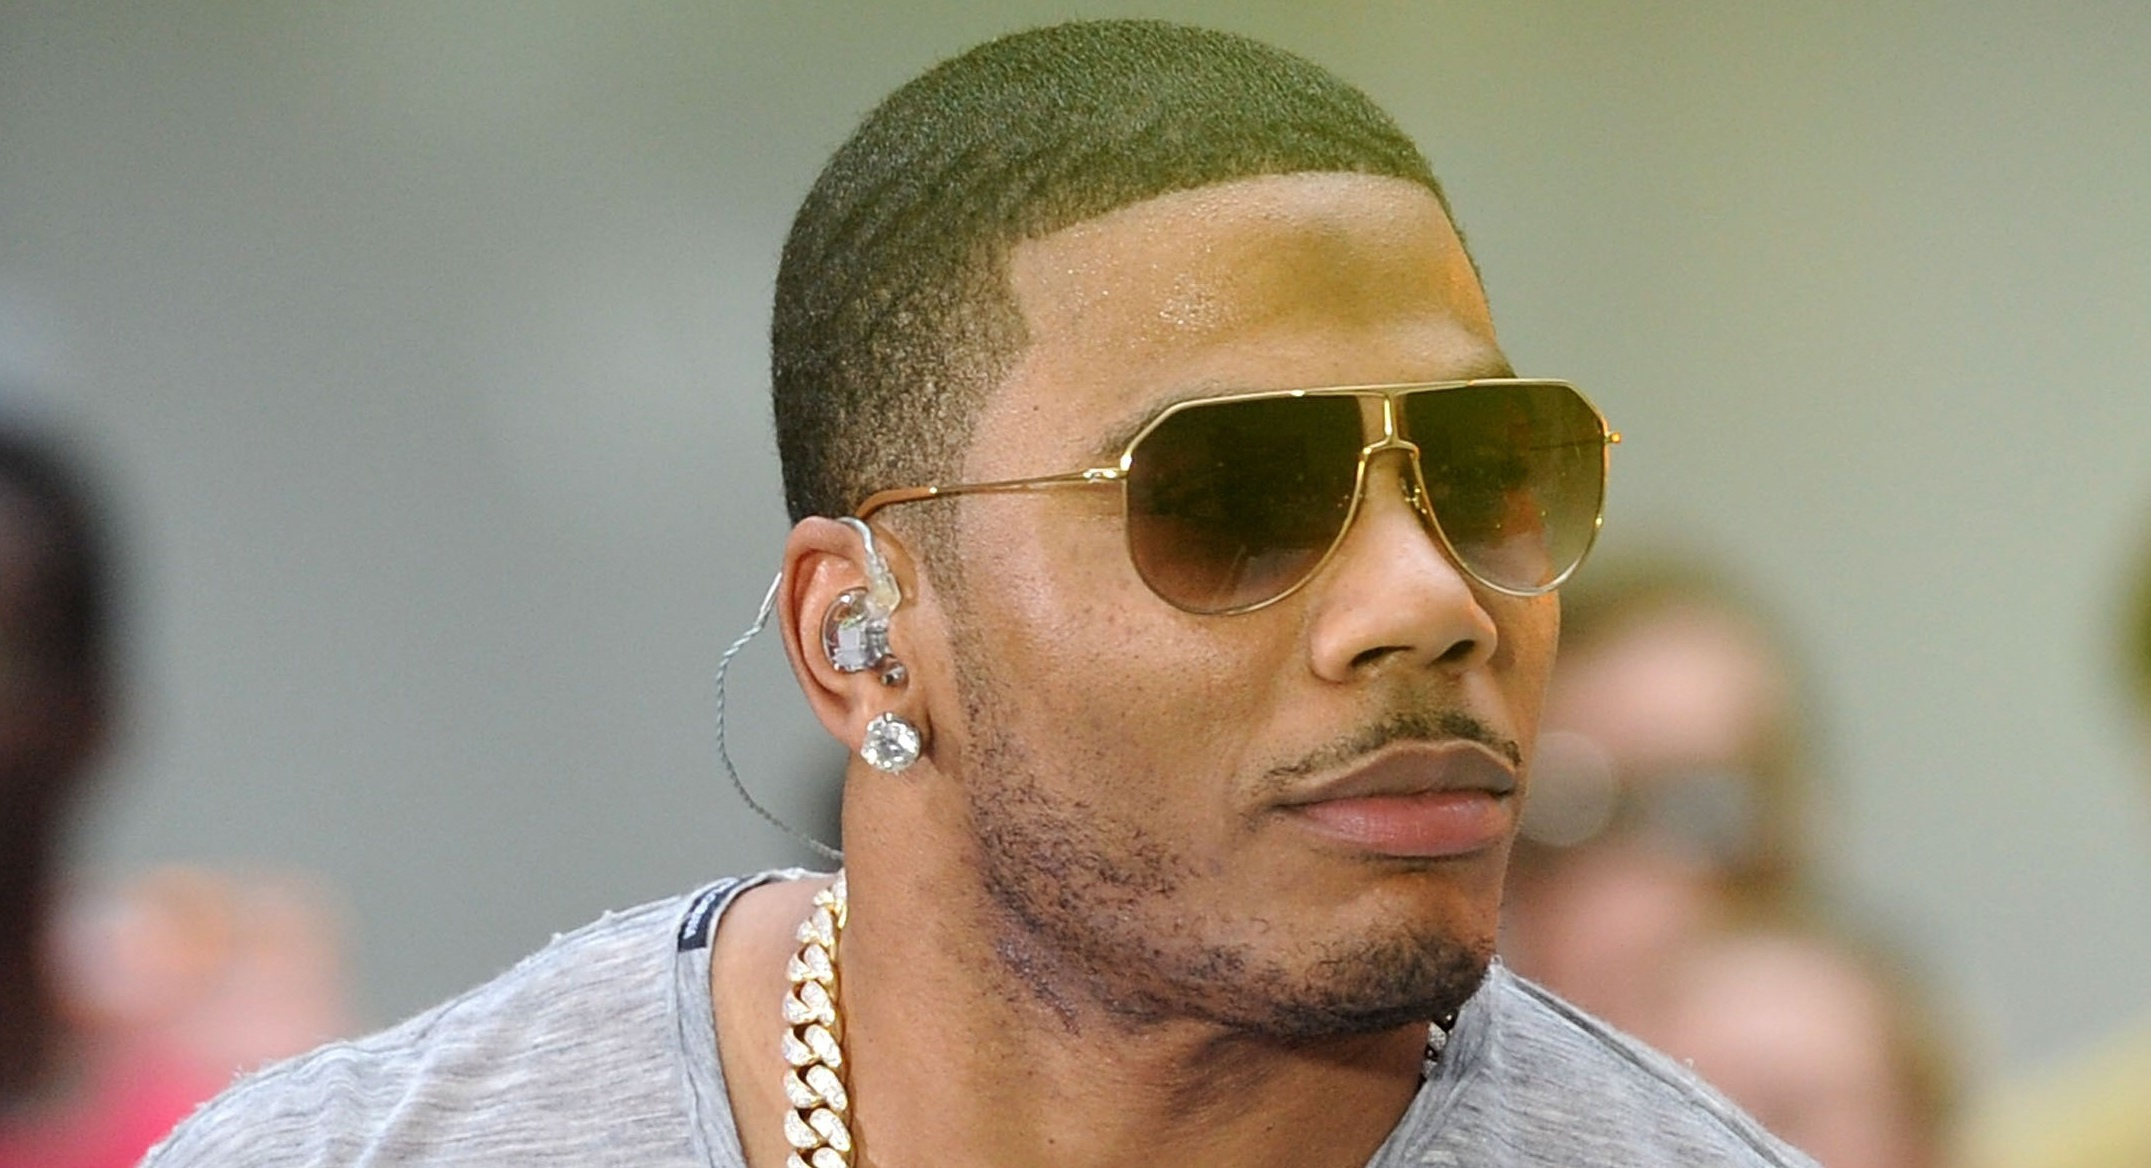 Nelly High Definition Wallpapers